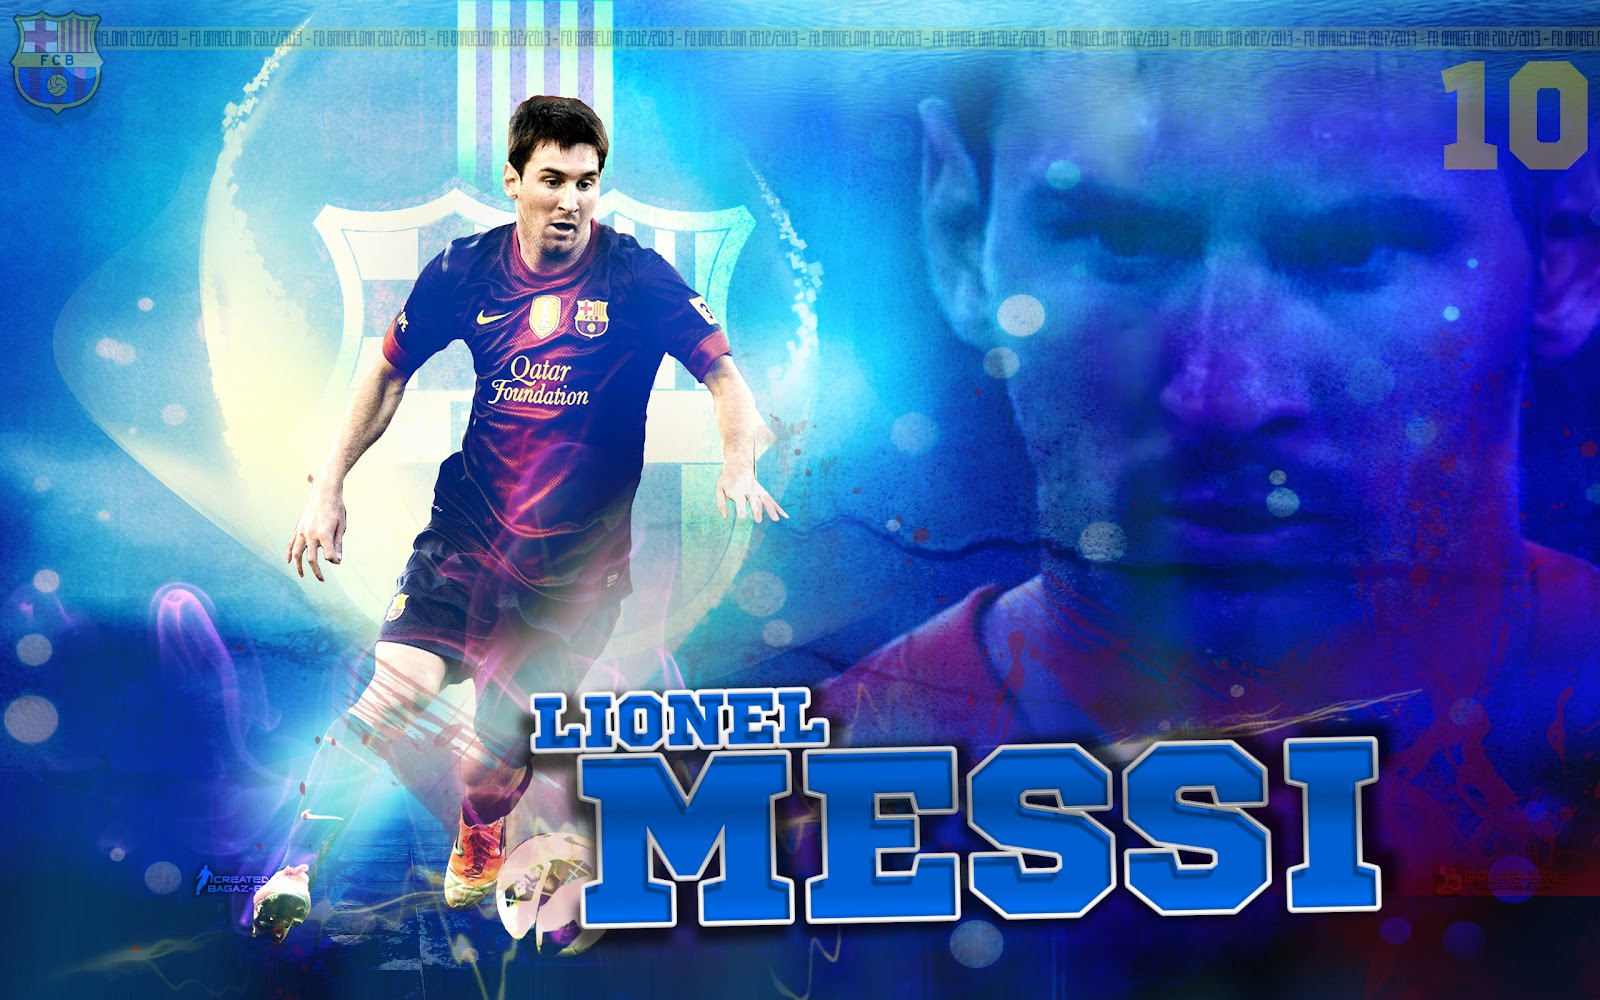 Wallpaper Barca 2013 Messi